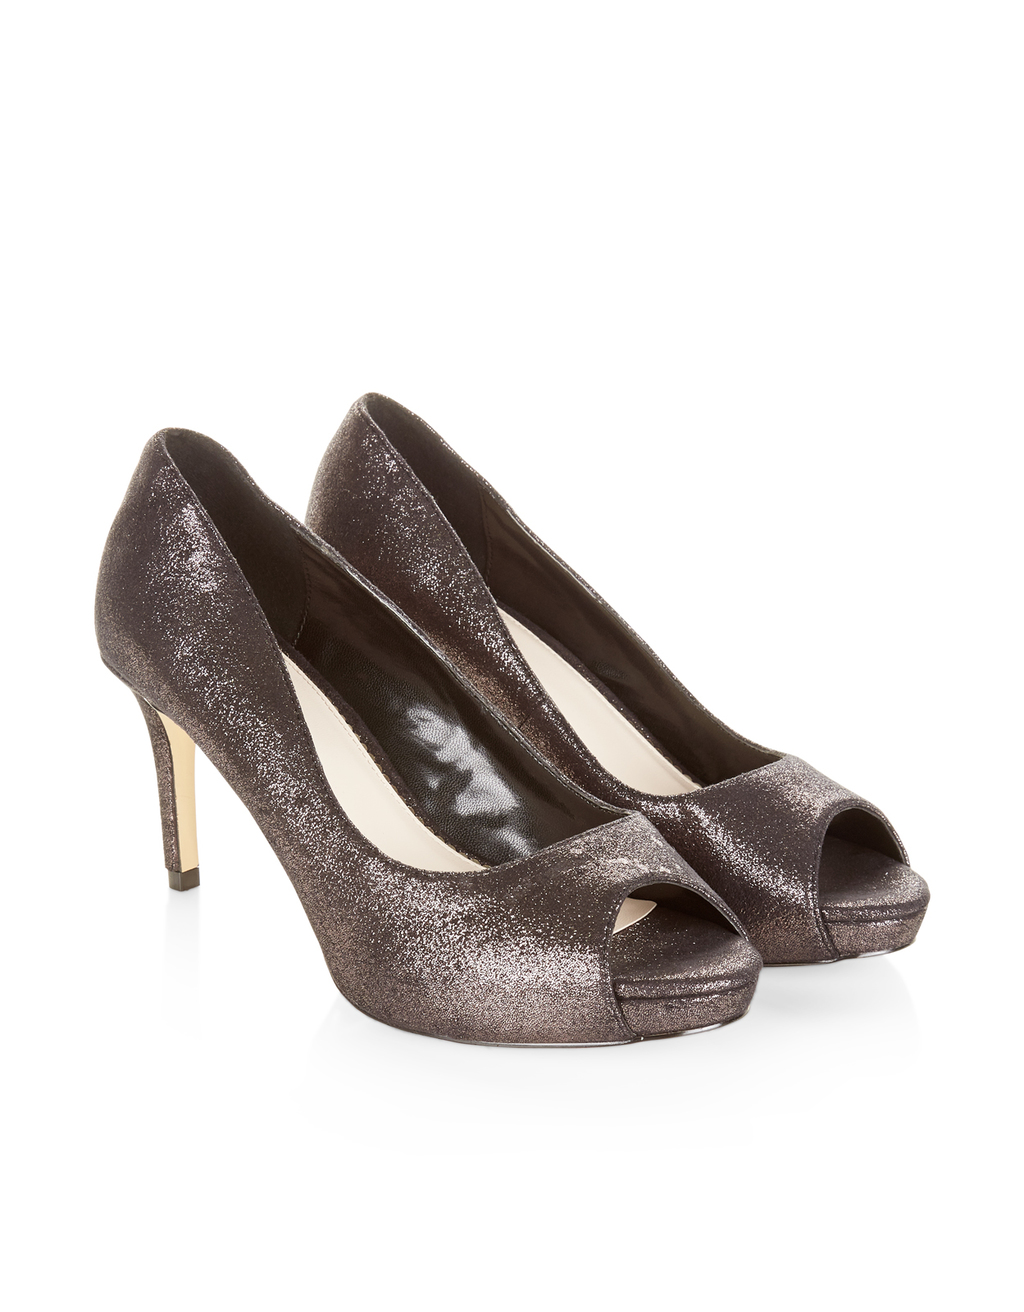 Lana Sparkle Peep Toe - predominant colour: silver; occasions: evening, occasion; material: leather; heel height: high; heel: stiletto; toe: open toe/peeptoe; style: courts; finish: metallic; pattern: plain; season: a/w 2016; wardrobe: event